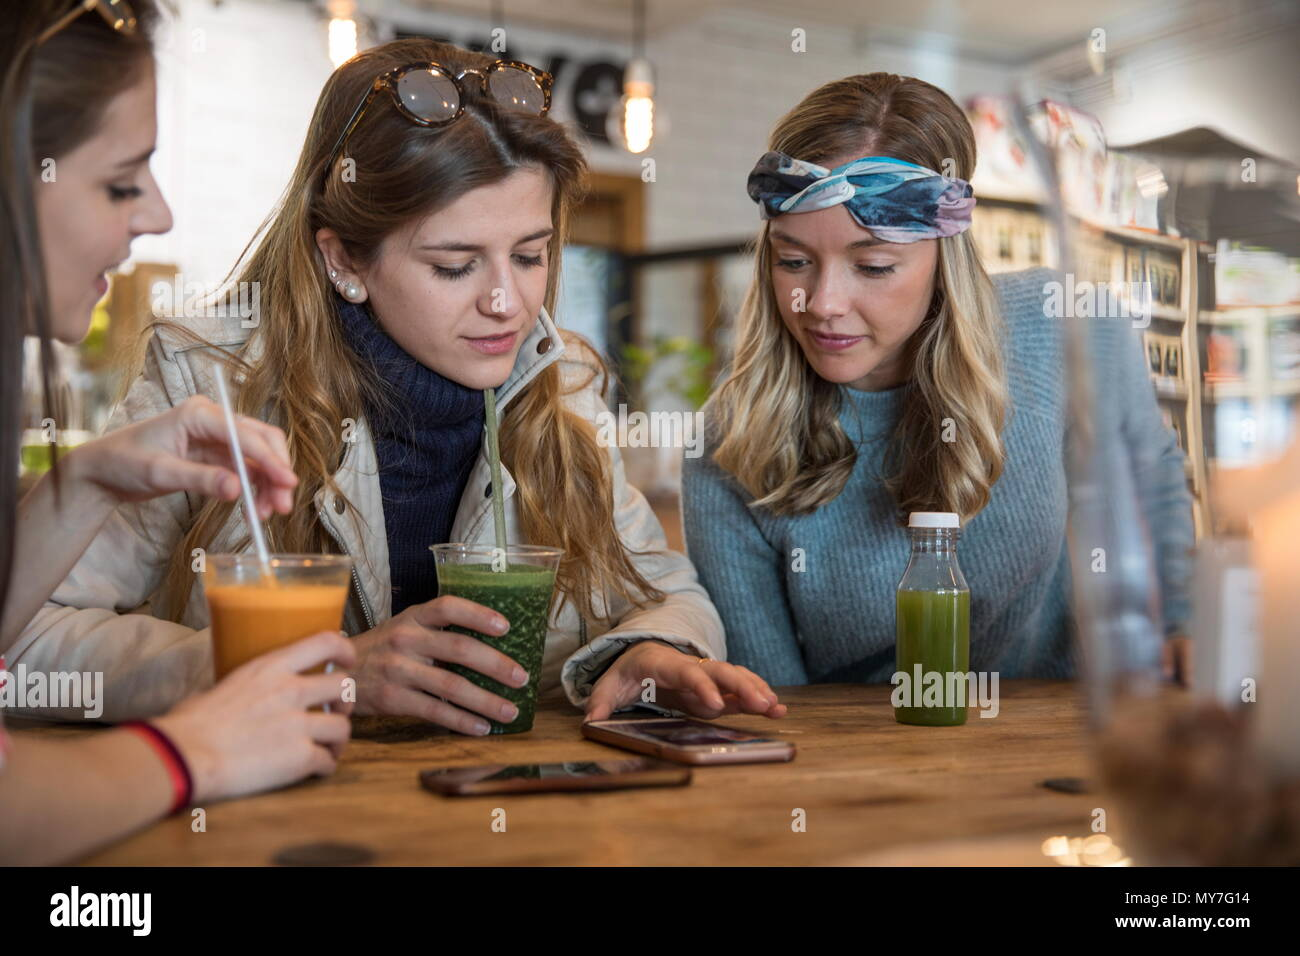 Three female friends, sitting in cafe, drinking smoothies, laughing Stock Photo